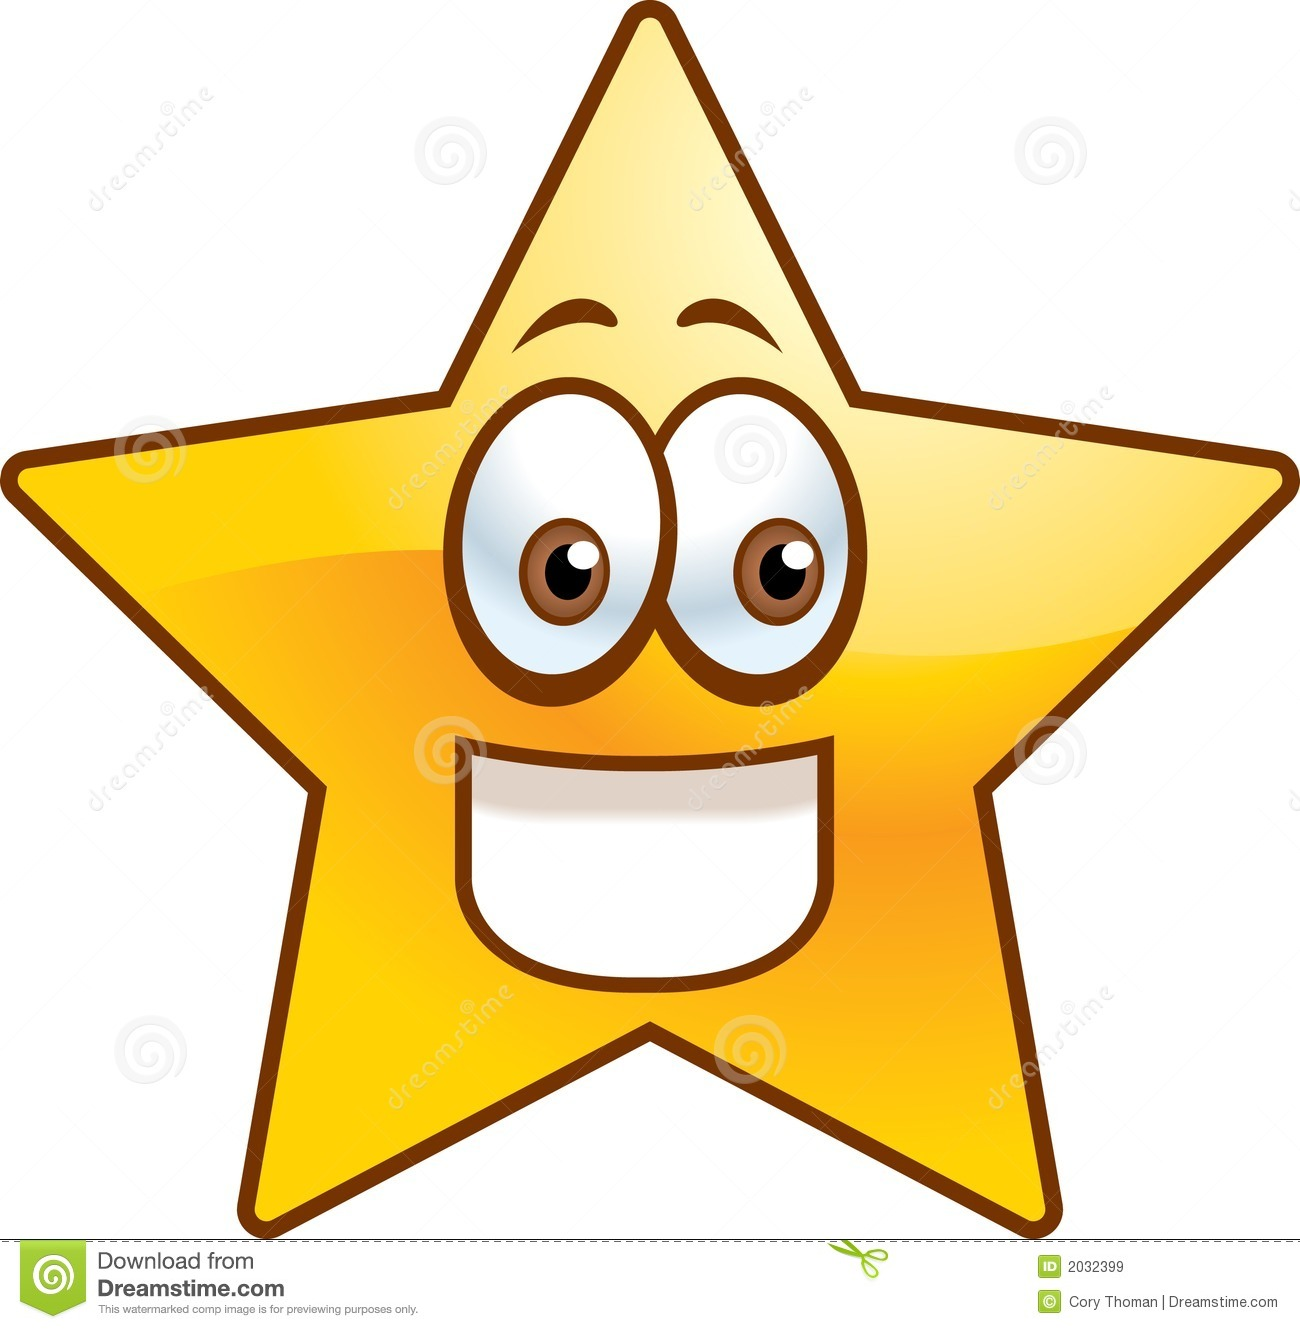 1300x1329 Star Clipart, Suggestions For Star Clipart, Download Star Clipart